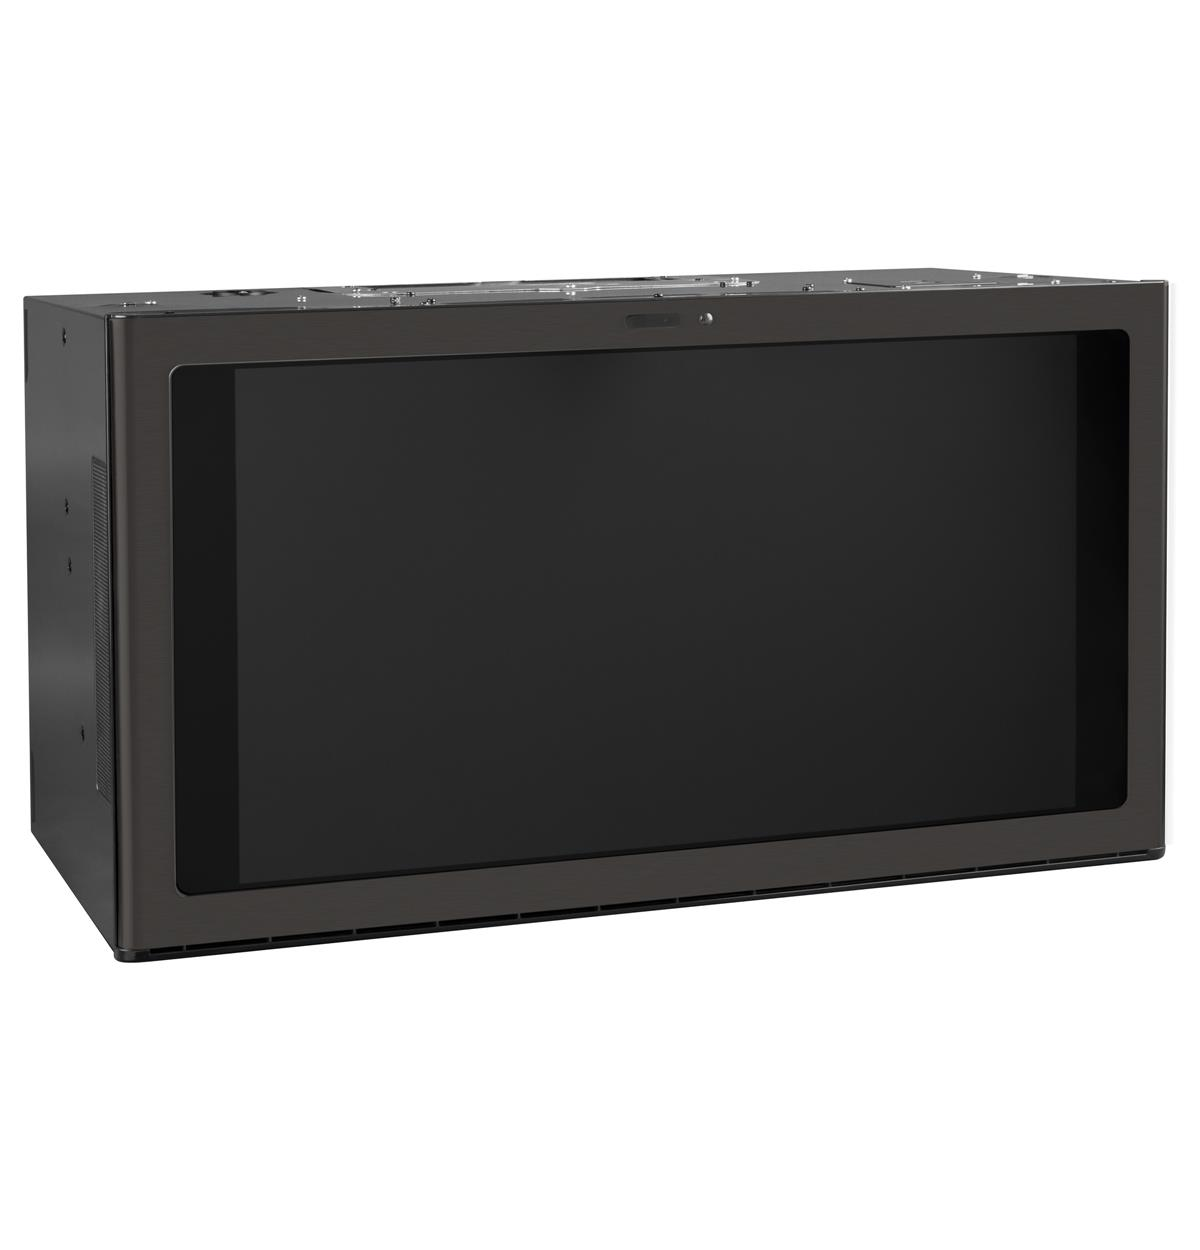 Black Stainless  UVH13013MTS Un-installed/free-standing